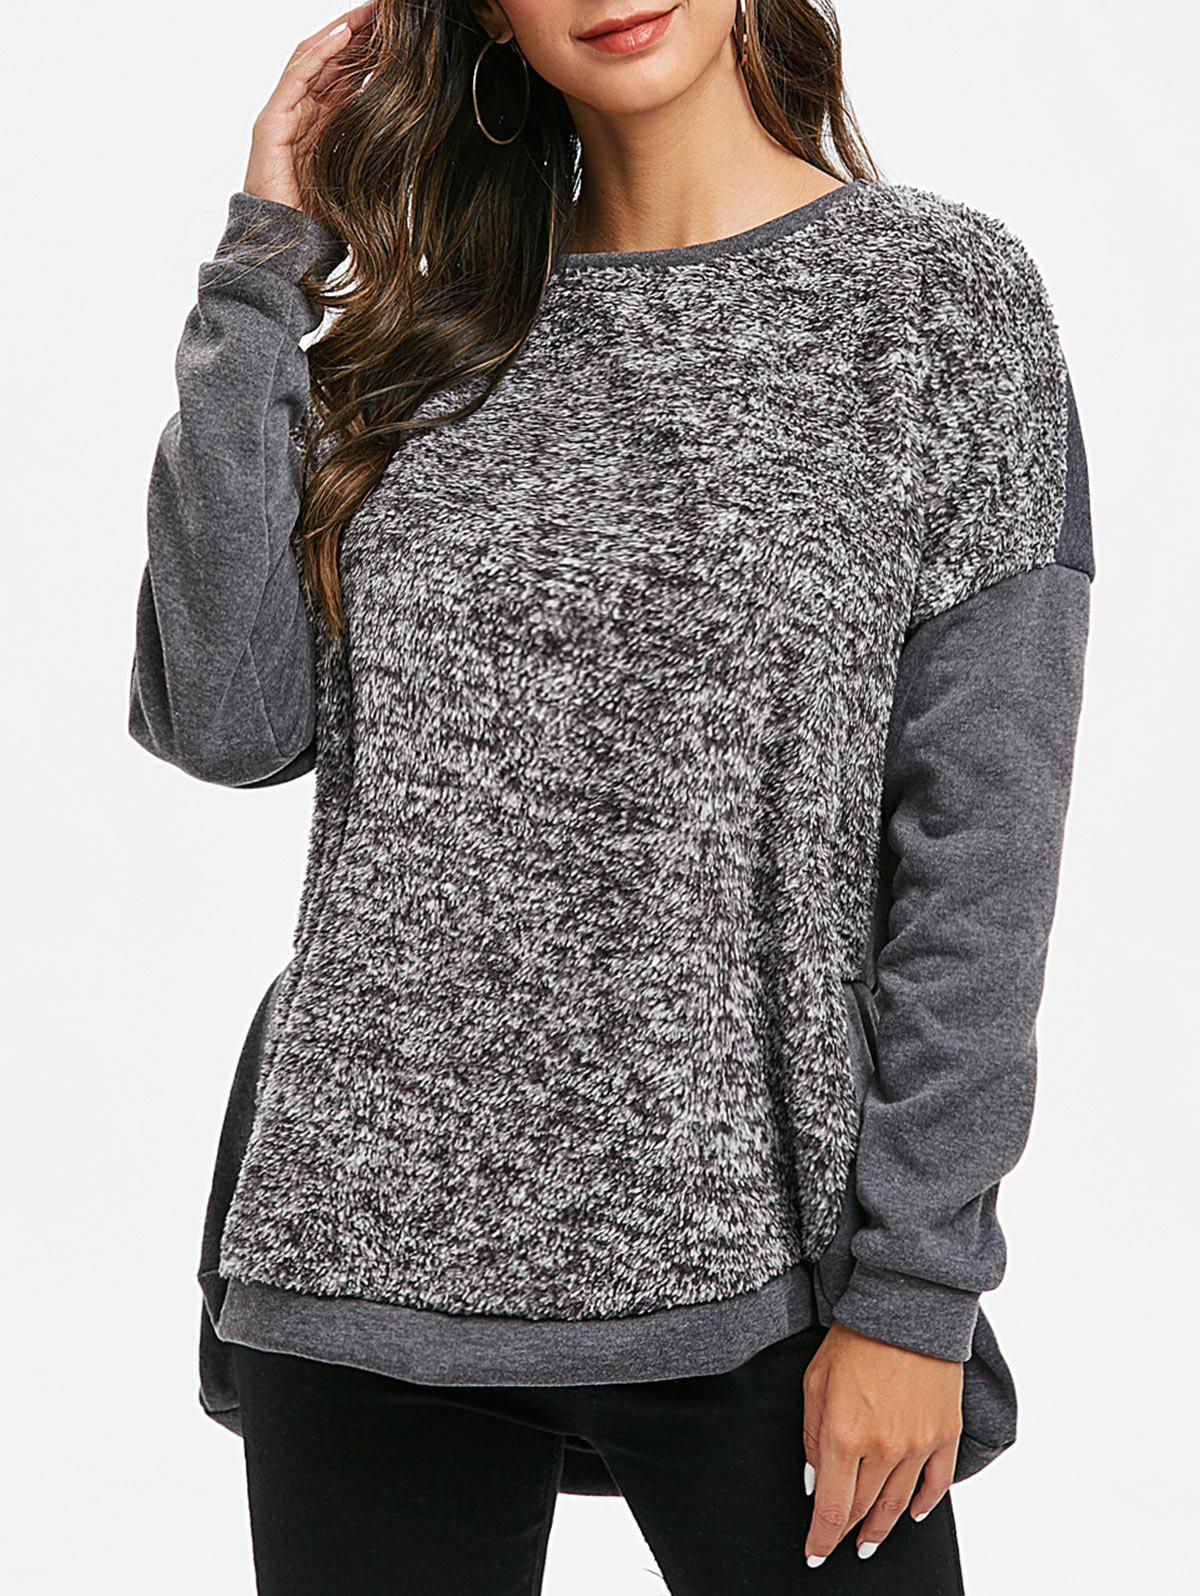 Drop Shoulder Faux Fur Insert High Low Sweatshirt - GRAY 3XL